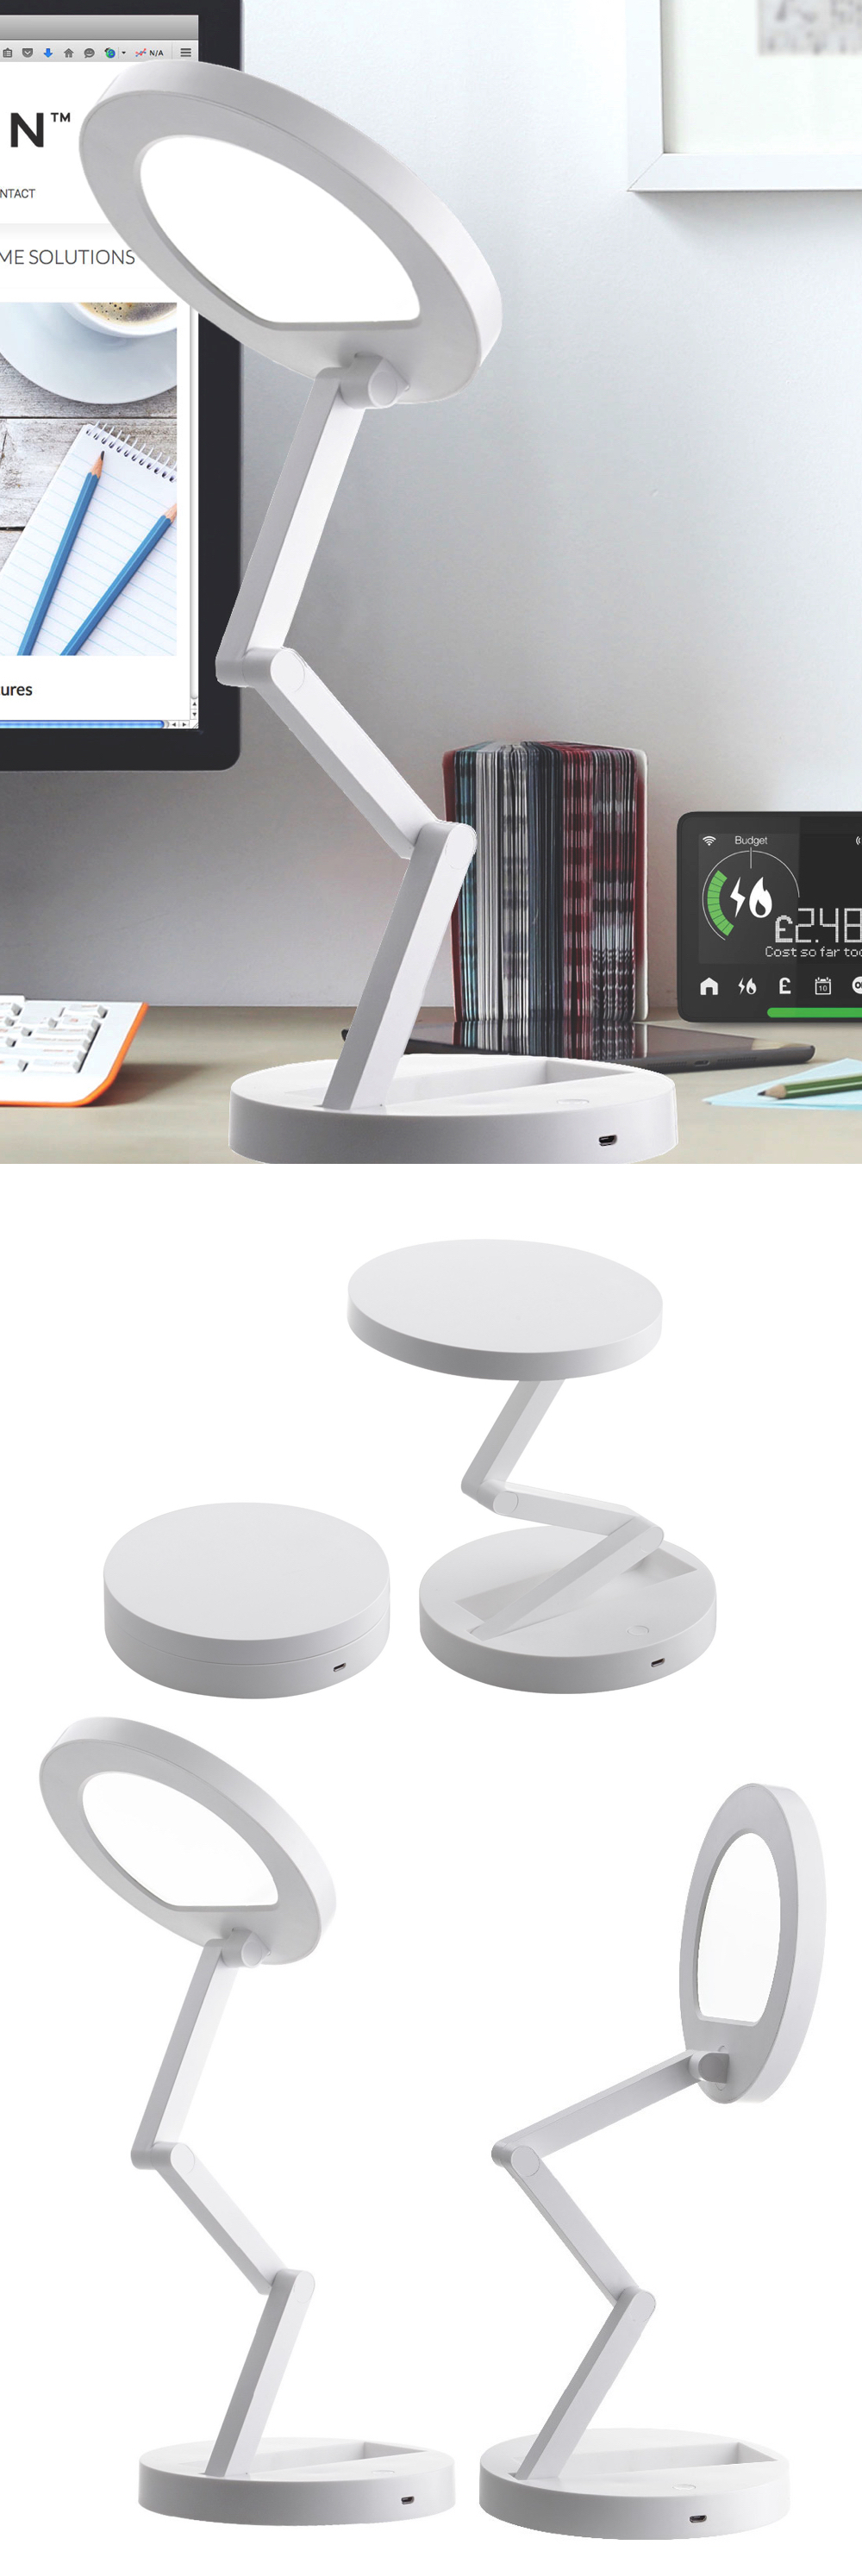 Pacchetto Q6 LED Table Lamp